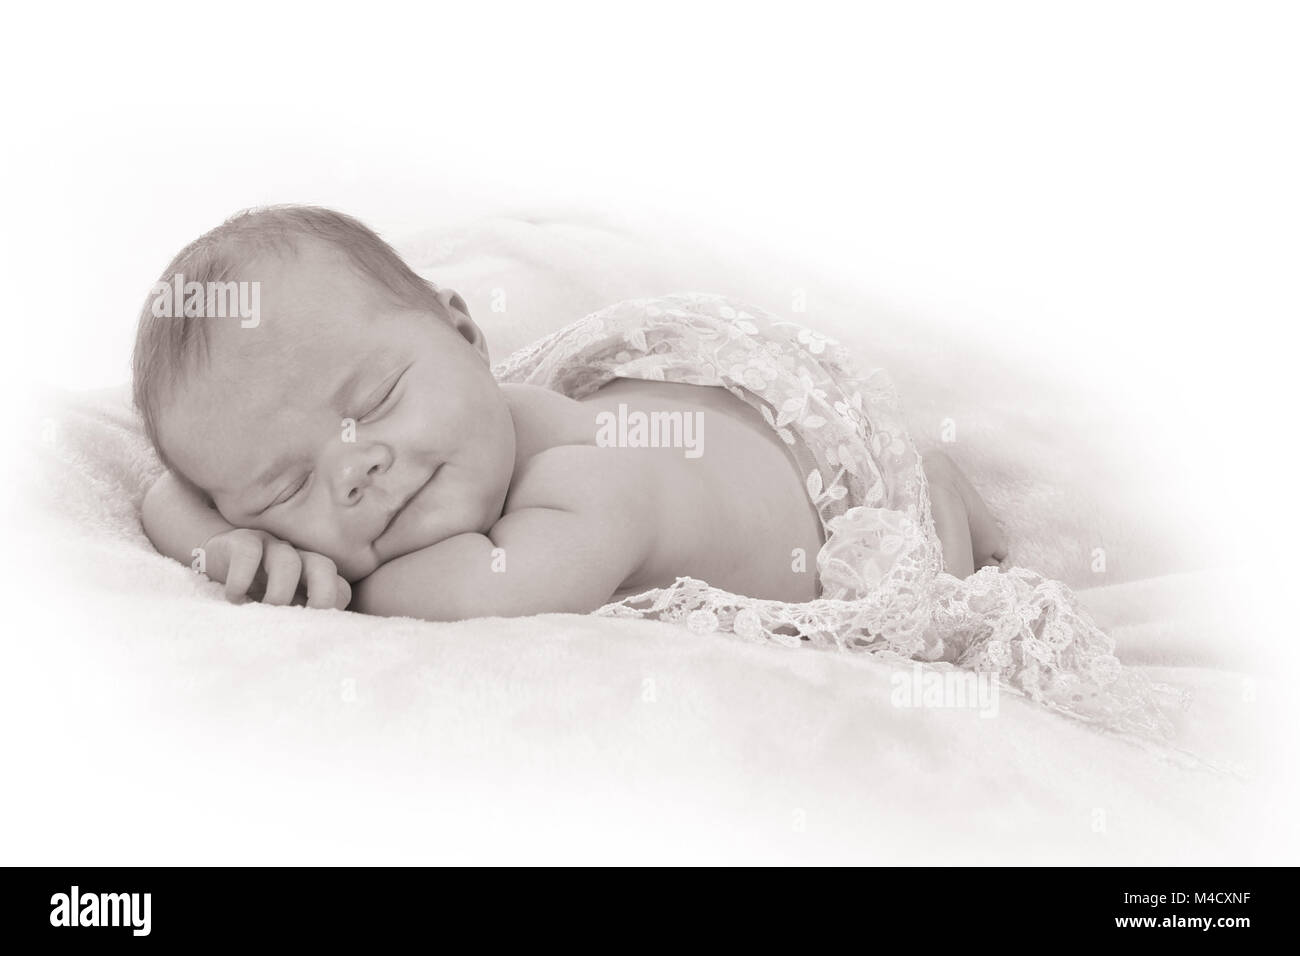 Newborn baby girl sleeping in nursery, beautiful new baby relaxed and sleeping - Stock Image